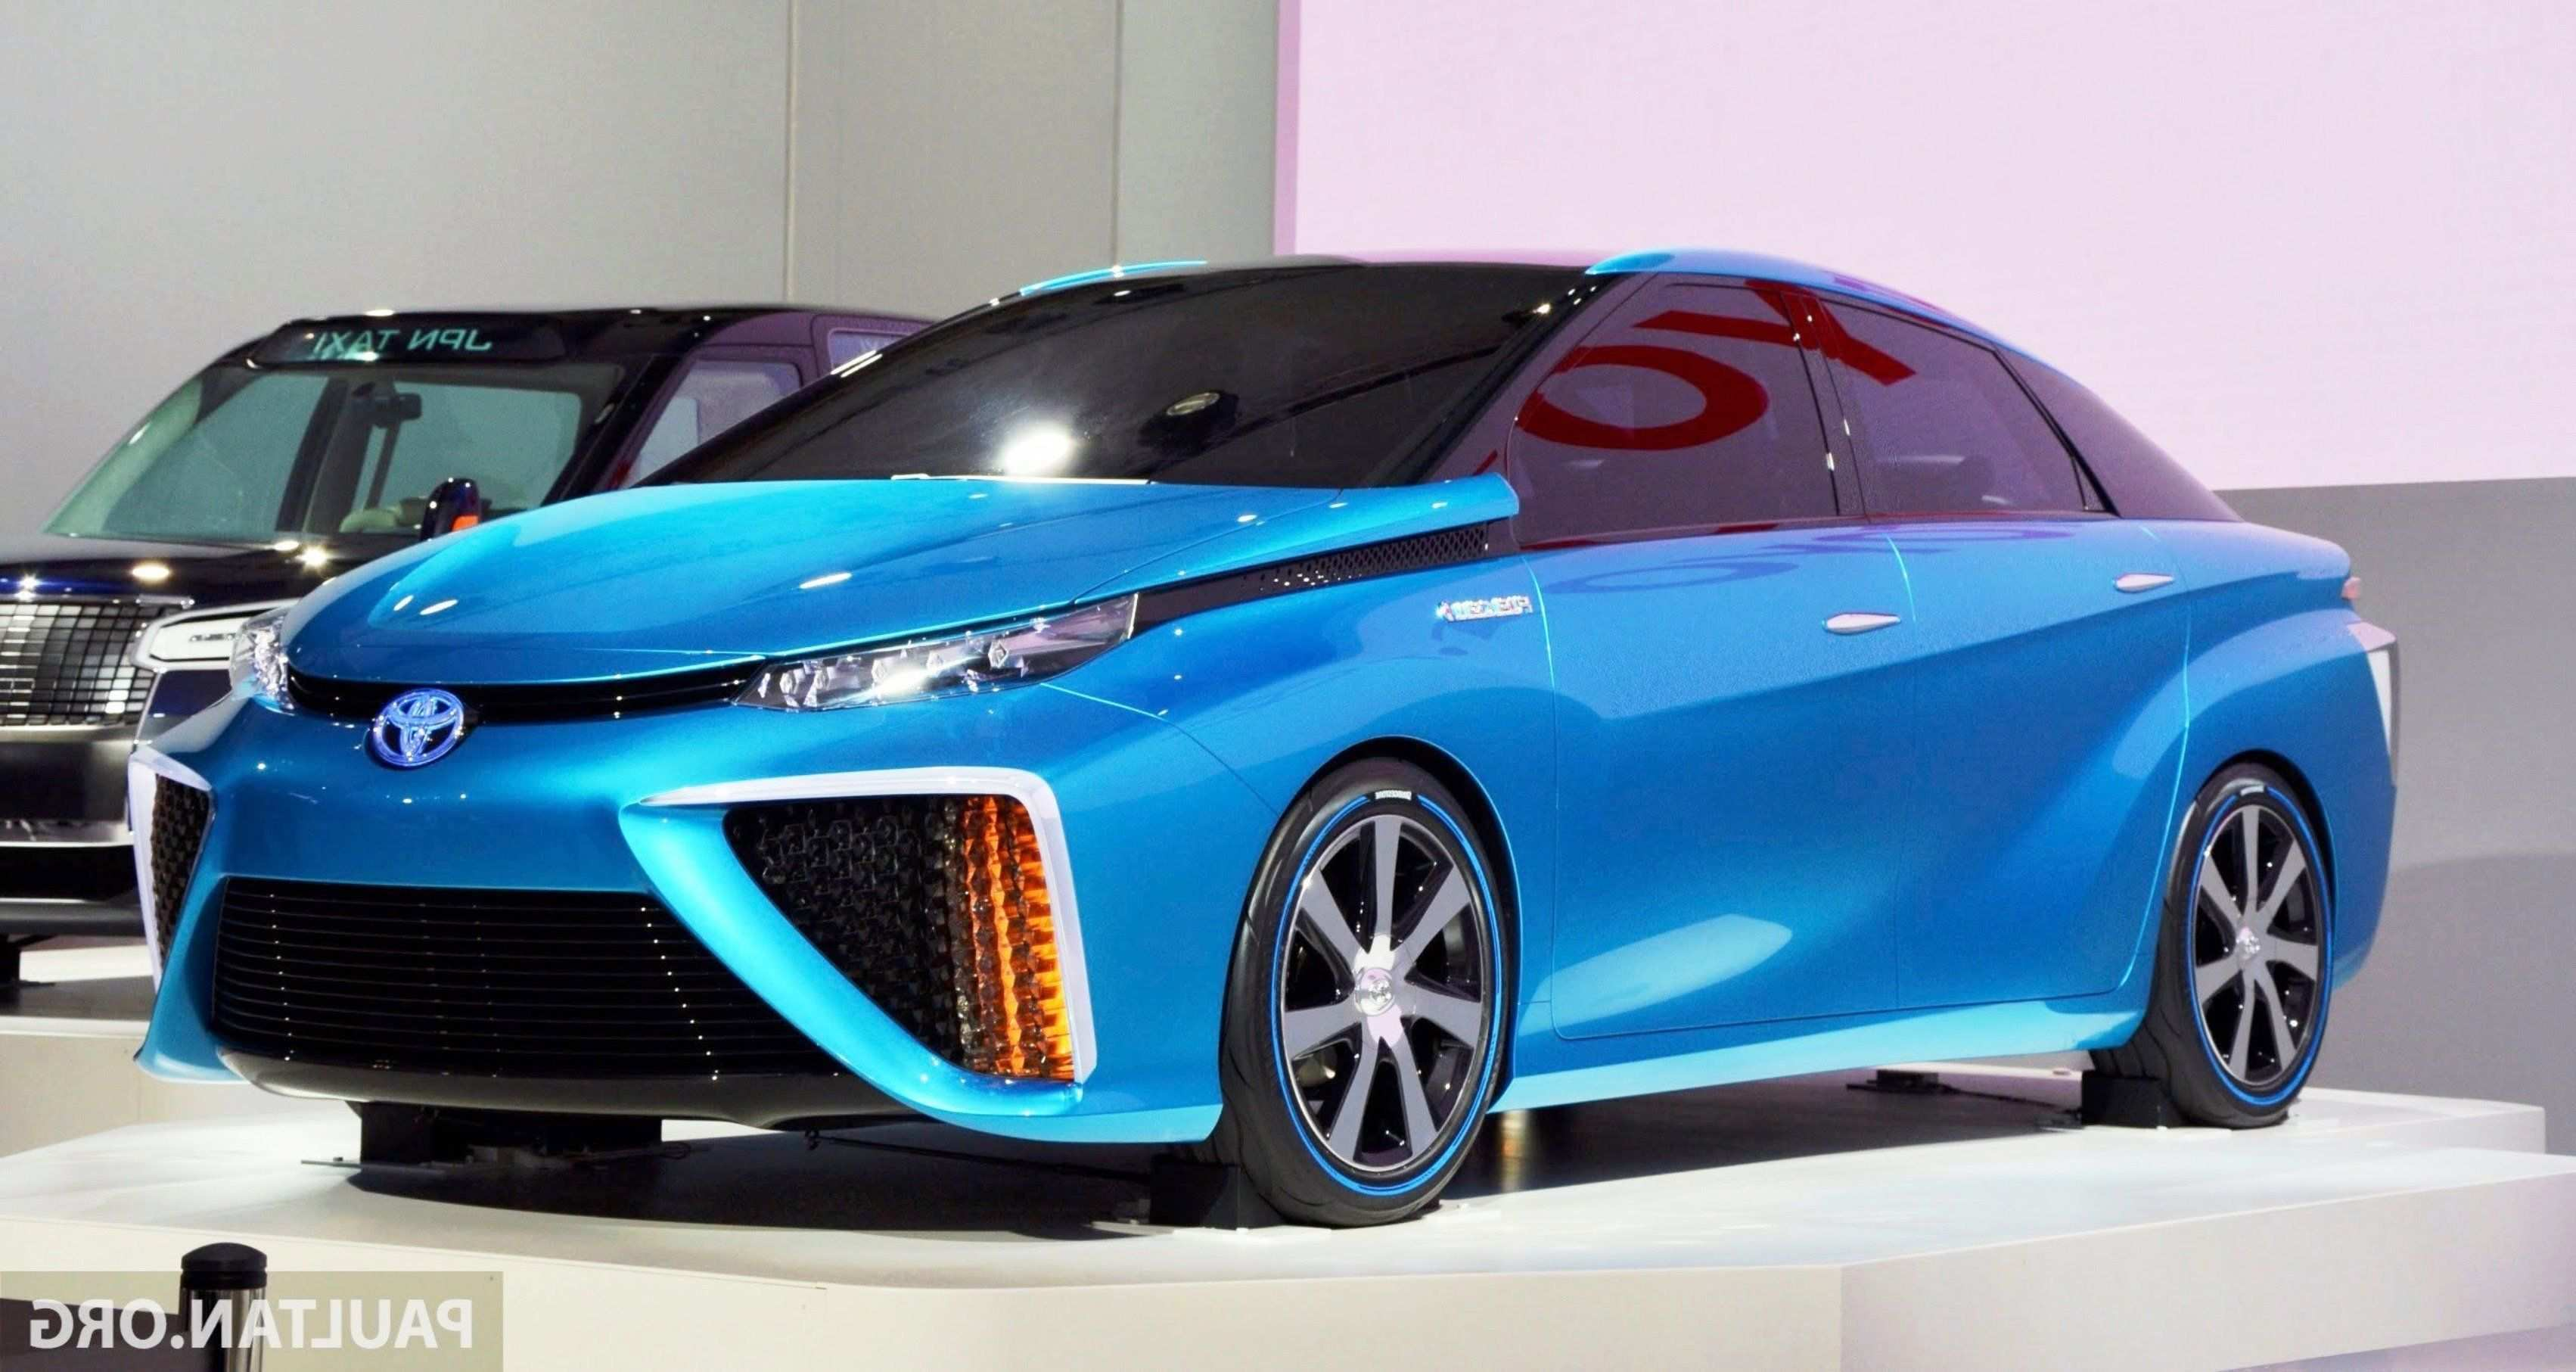 22 New 2020 All Toyota Camry History by 2020 All Toyota Camry